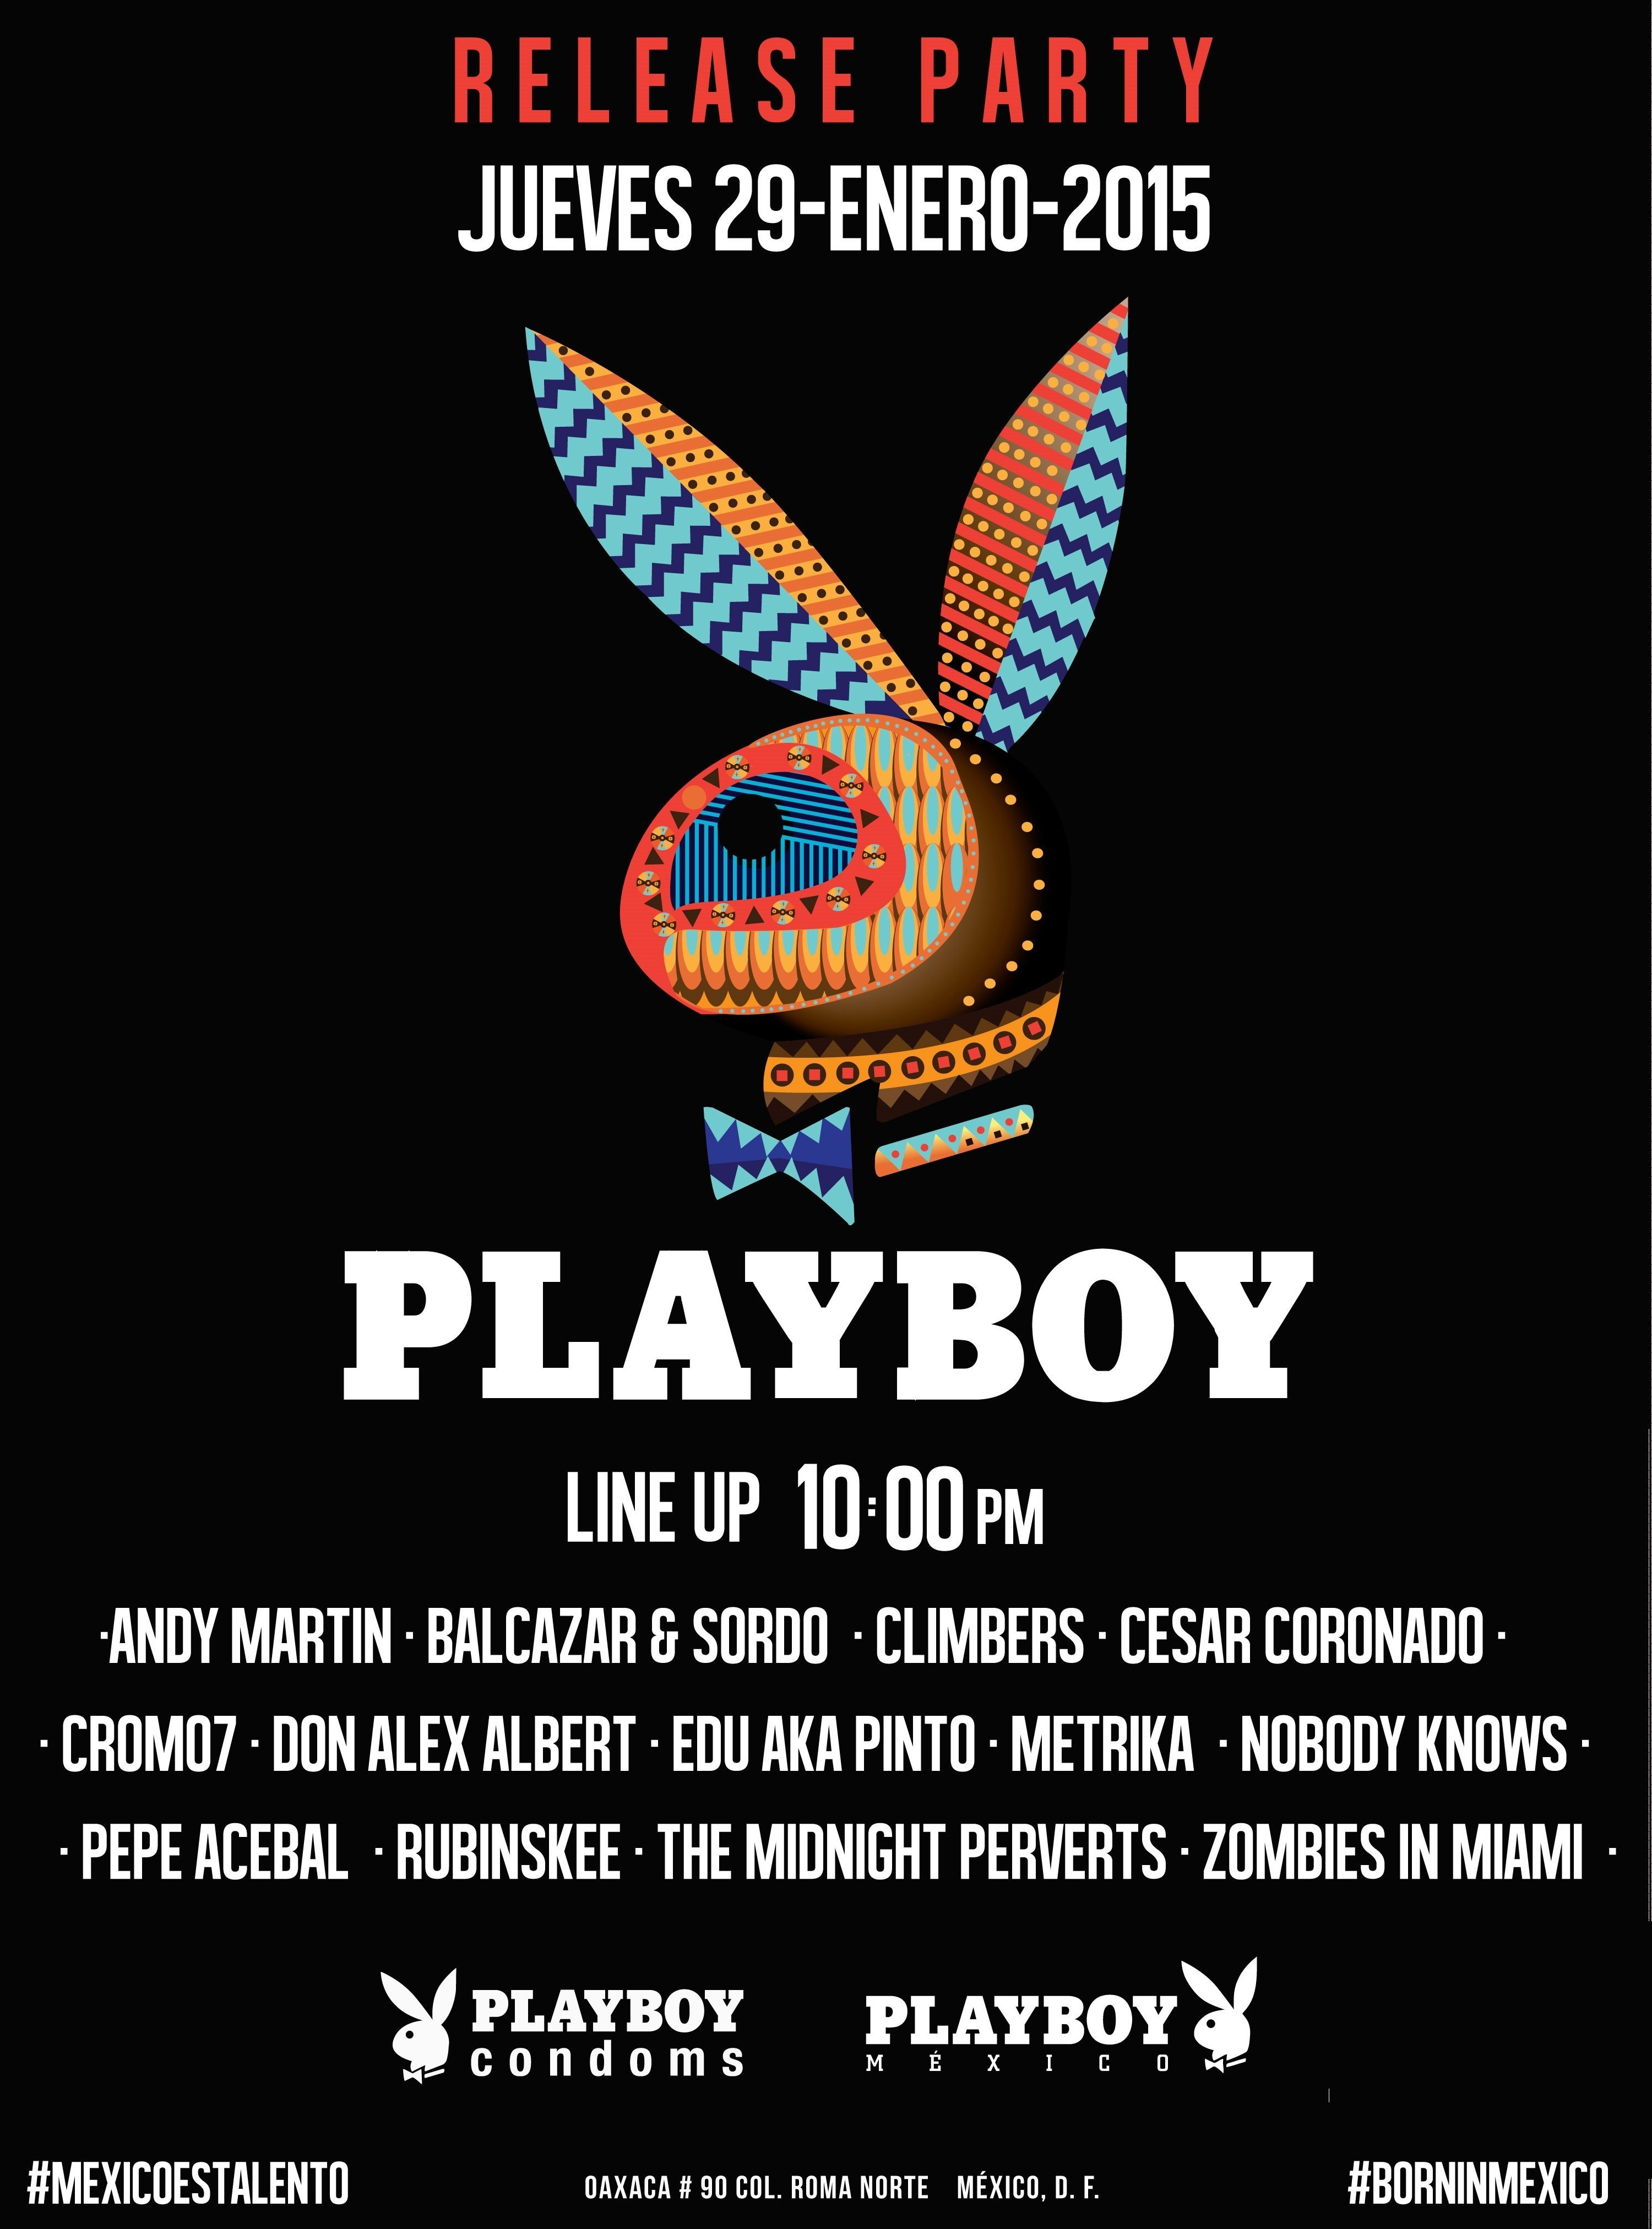 Playboy-CD-release-party-flyer